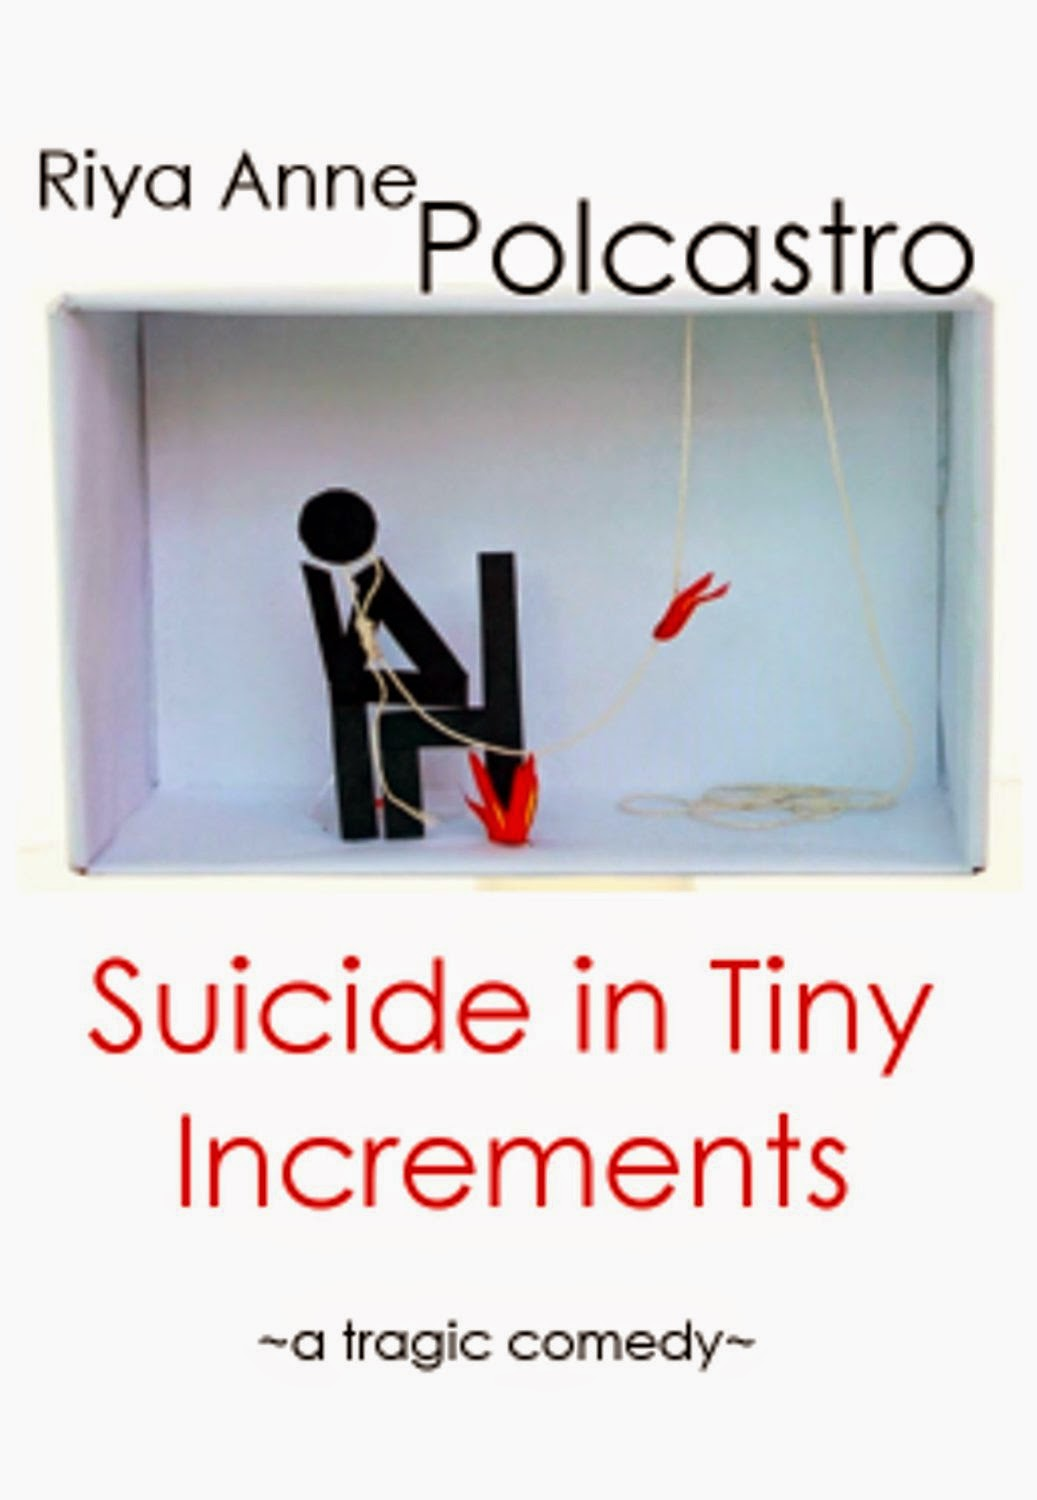 http://www.amazon.com/Suicide-Tiny-Increments-Tragic-Comedy-ebook/dp/B00LAFBU44/ref=sr_1_1?ie=UTF8&qid=1418959890&sr=8-1&keywords=suicide+in+tiny+increments